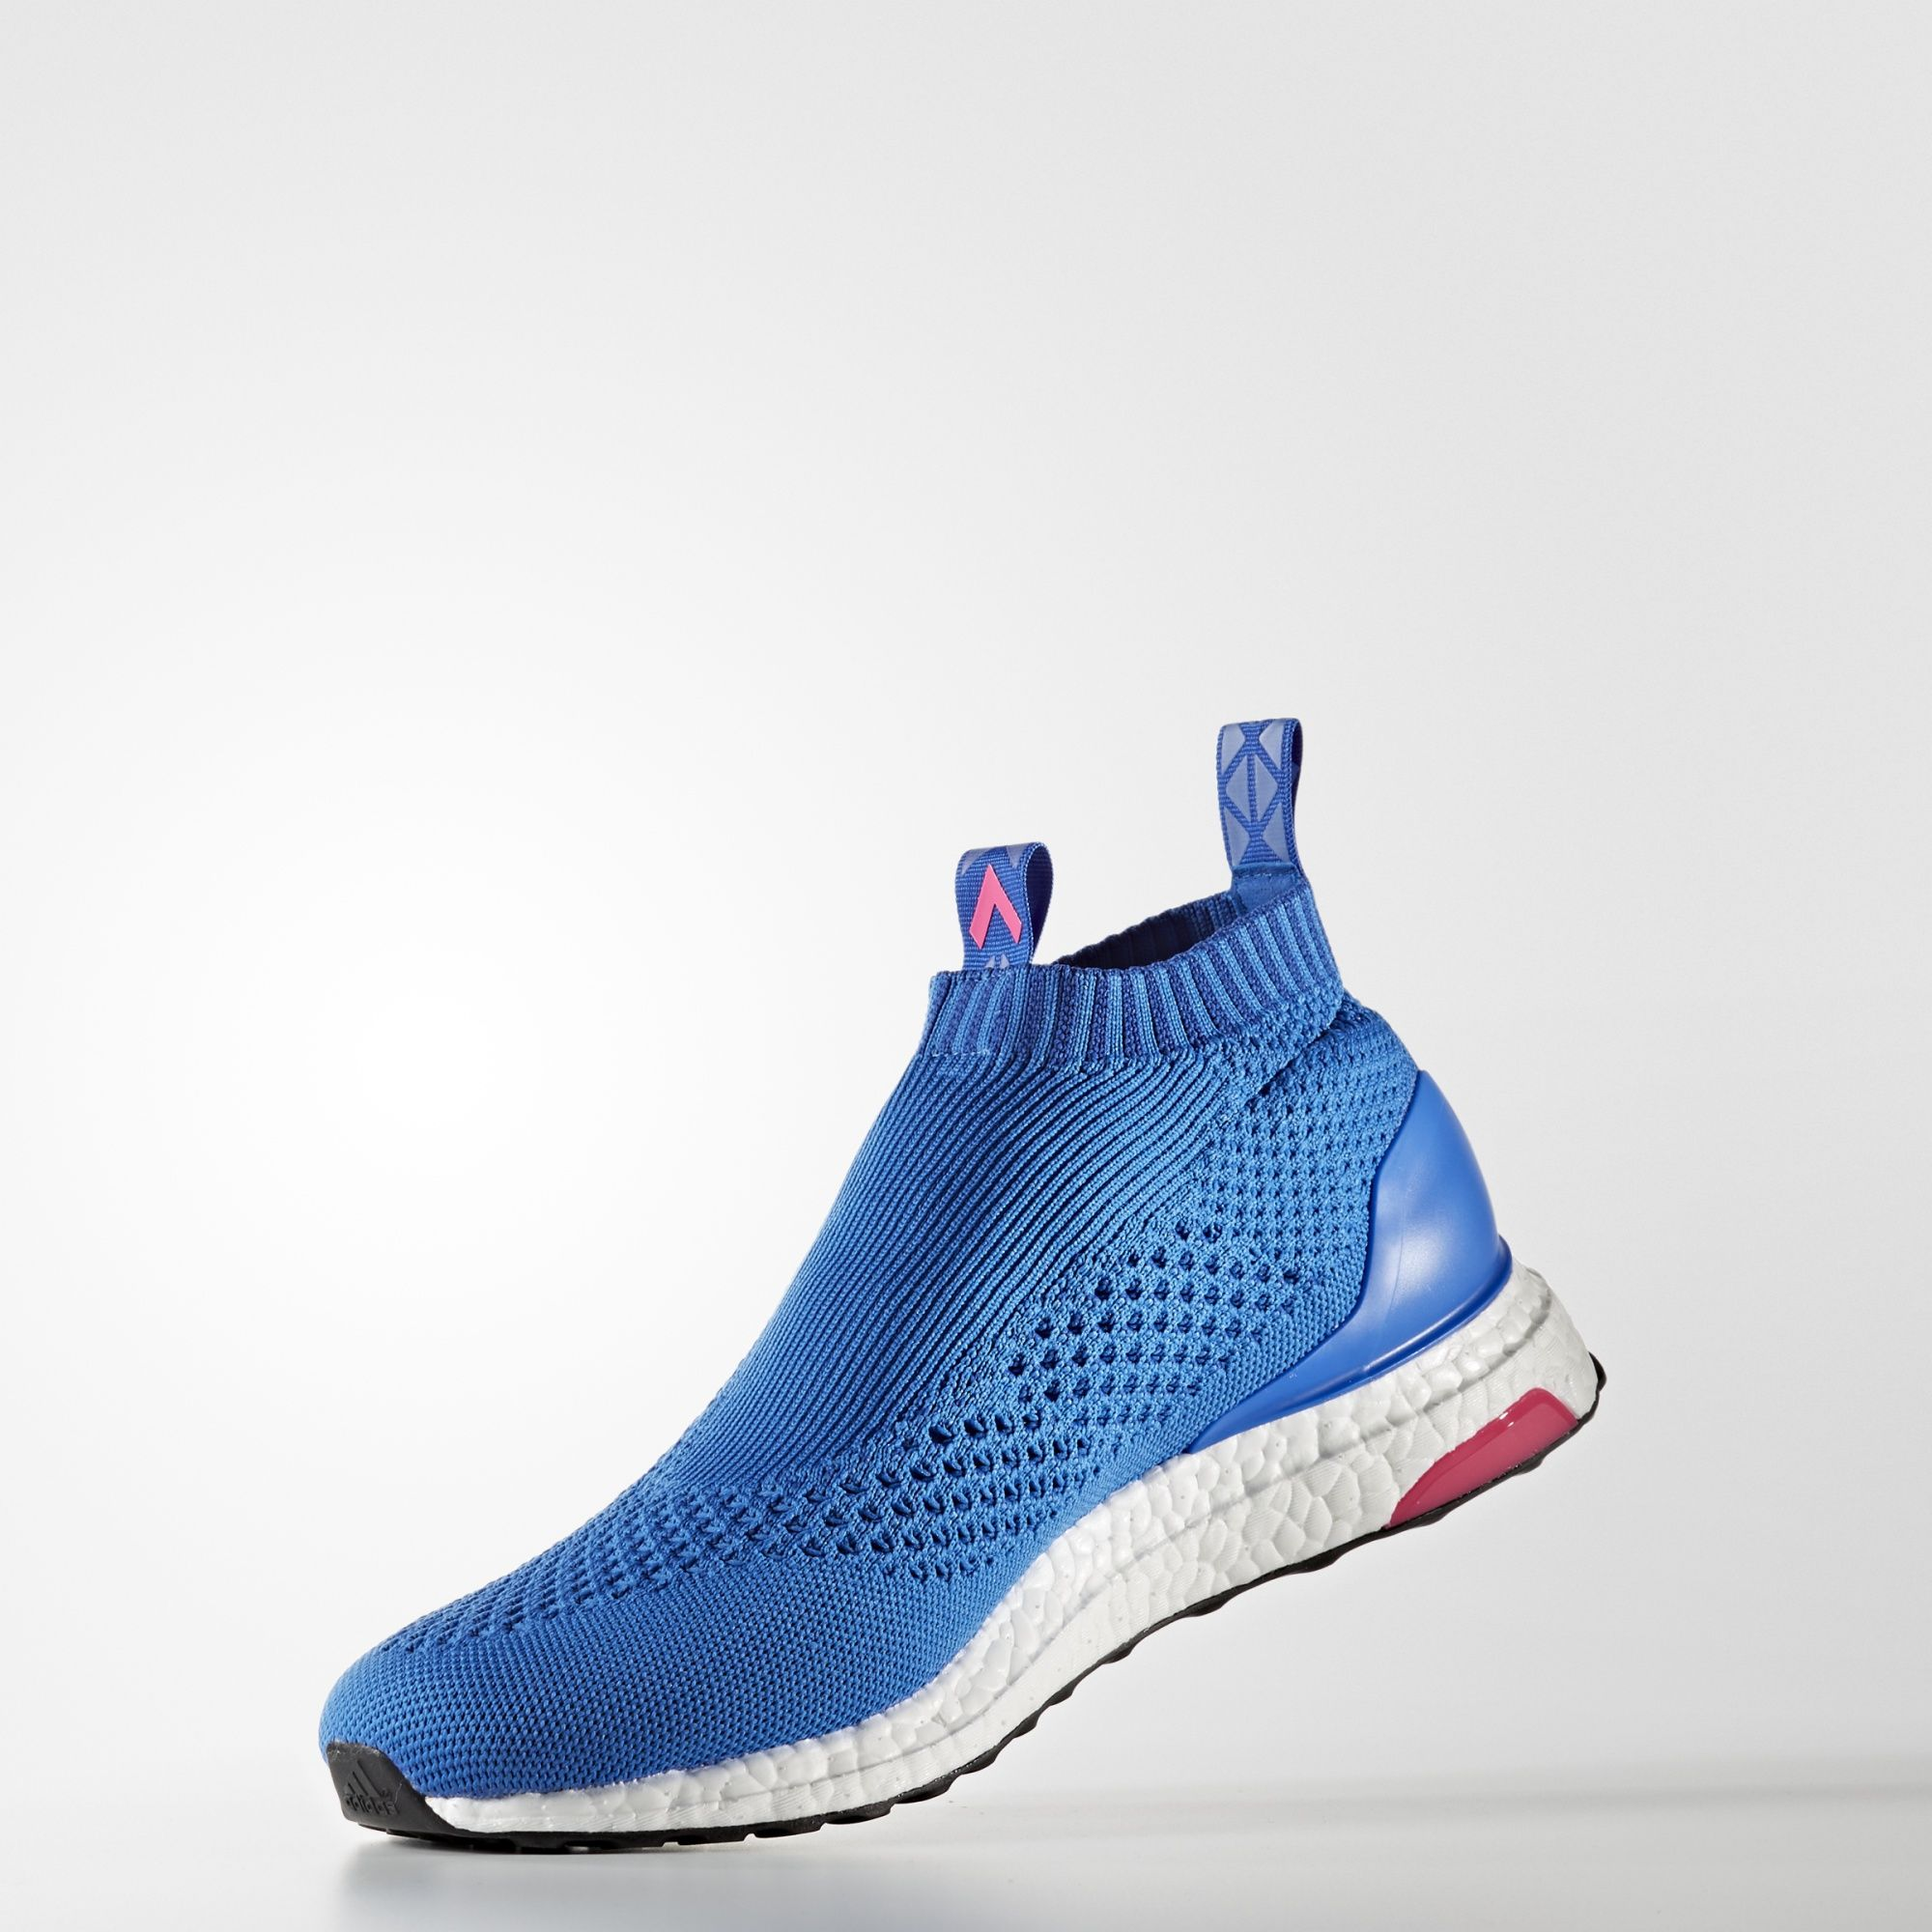 adidas ACE 16 Purecontrol Ultra Boost Blue BY9090 2